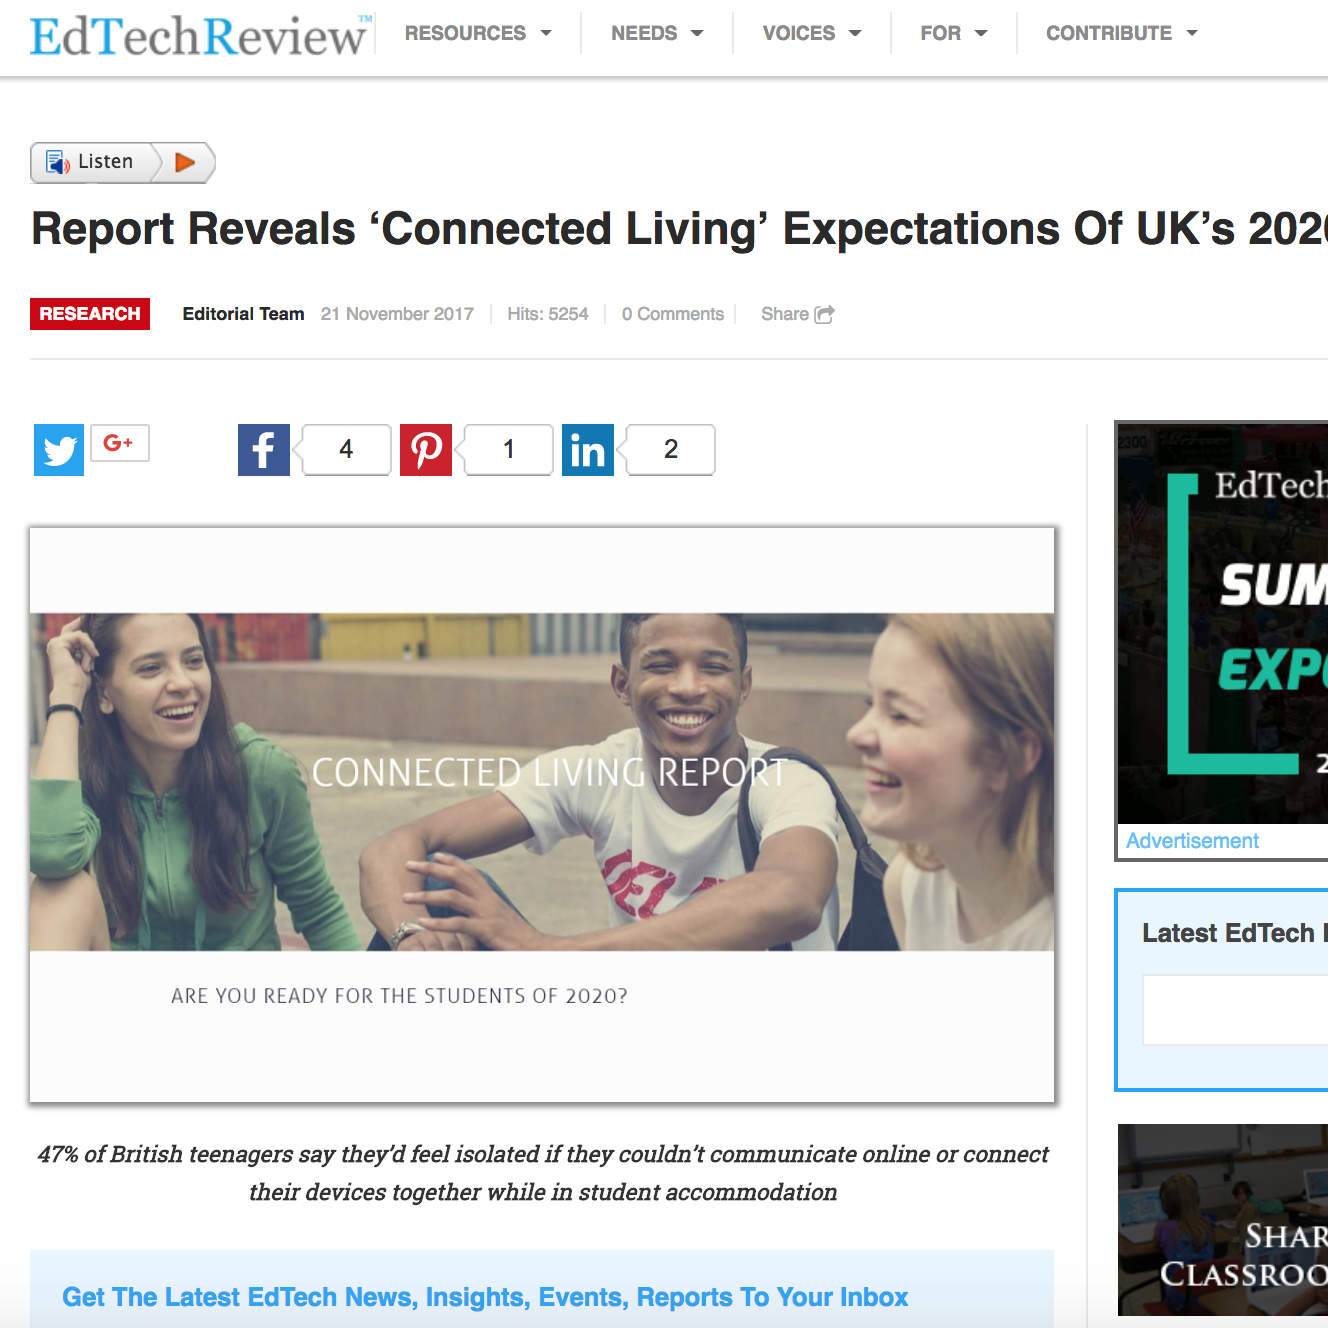 21 November 2017  EdTechReview: Report Reveals 'Connected Living' Expectations Of UK's 2020 Students   > go to story